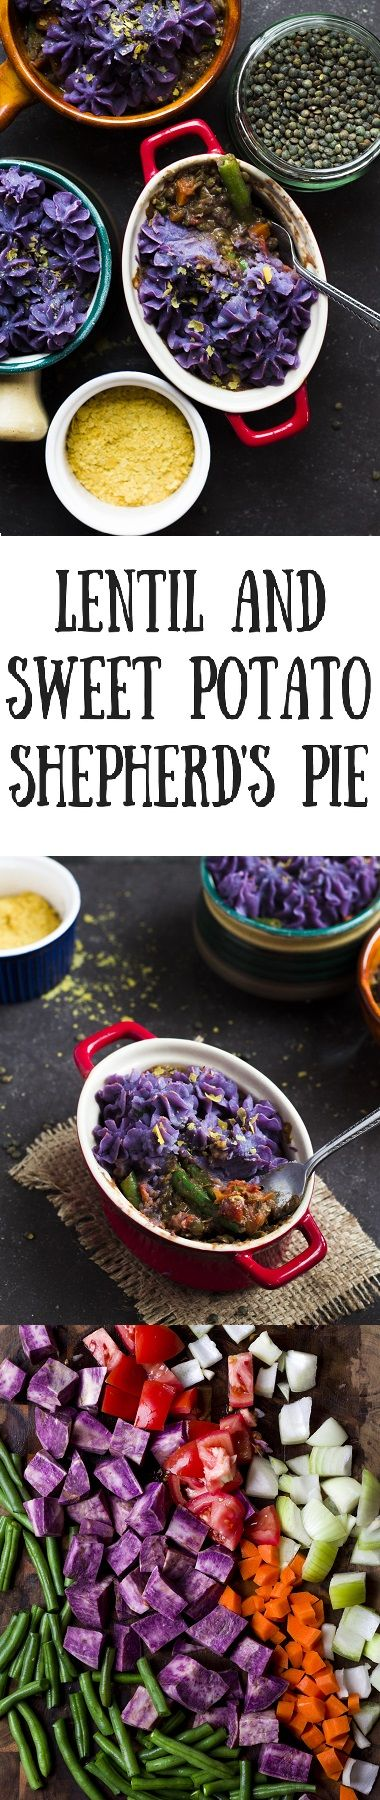 Wholesome and colourful Shepherd's pie with a nourishing lentil filling and vibrant purple topping